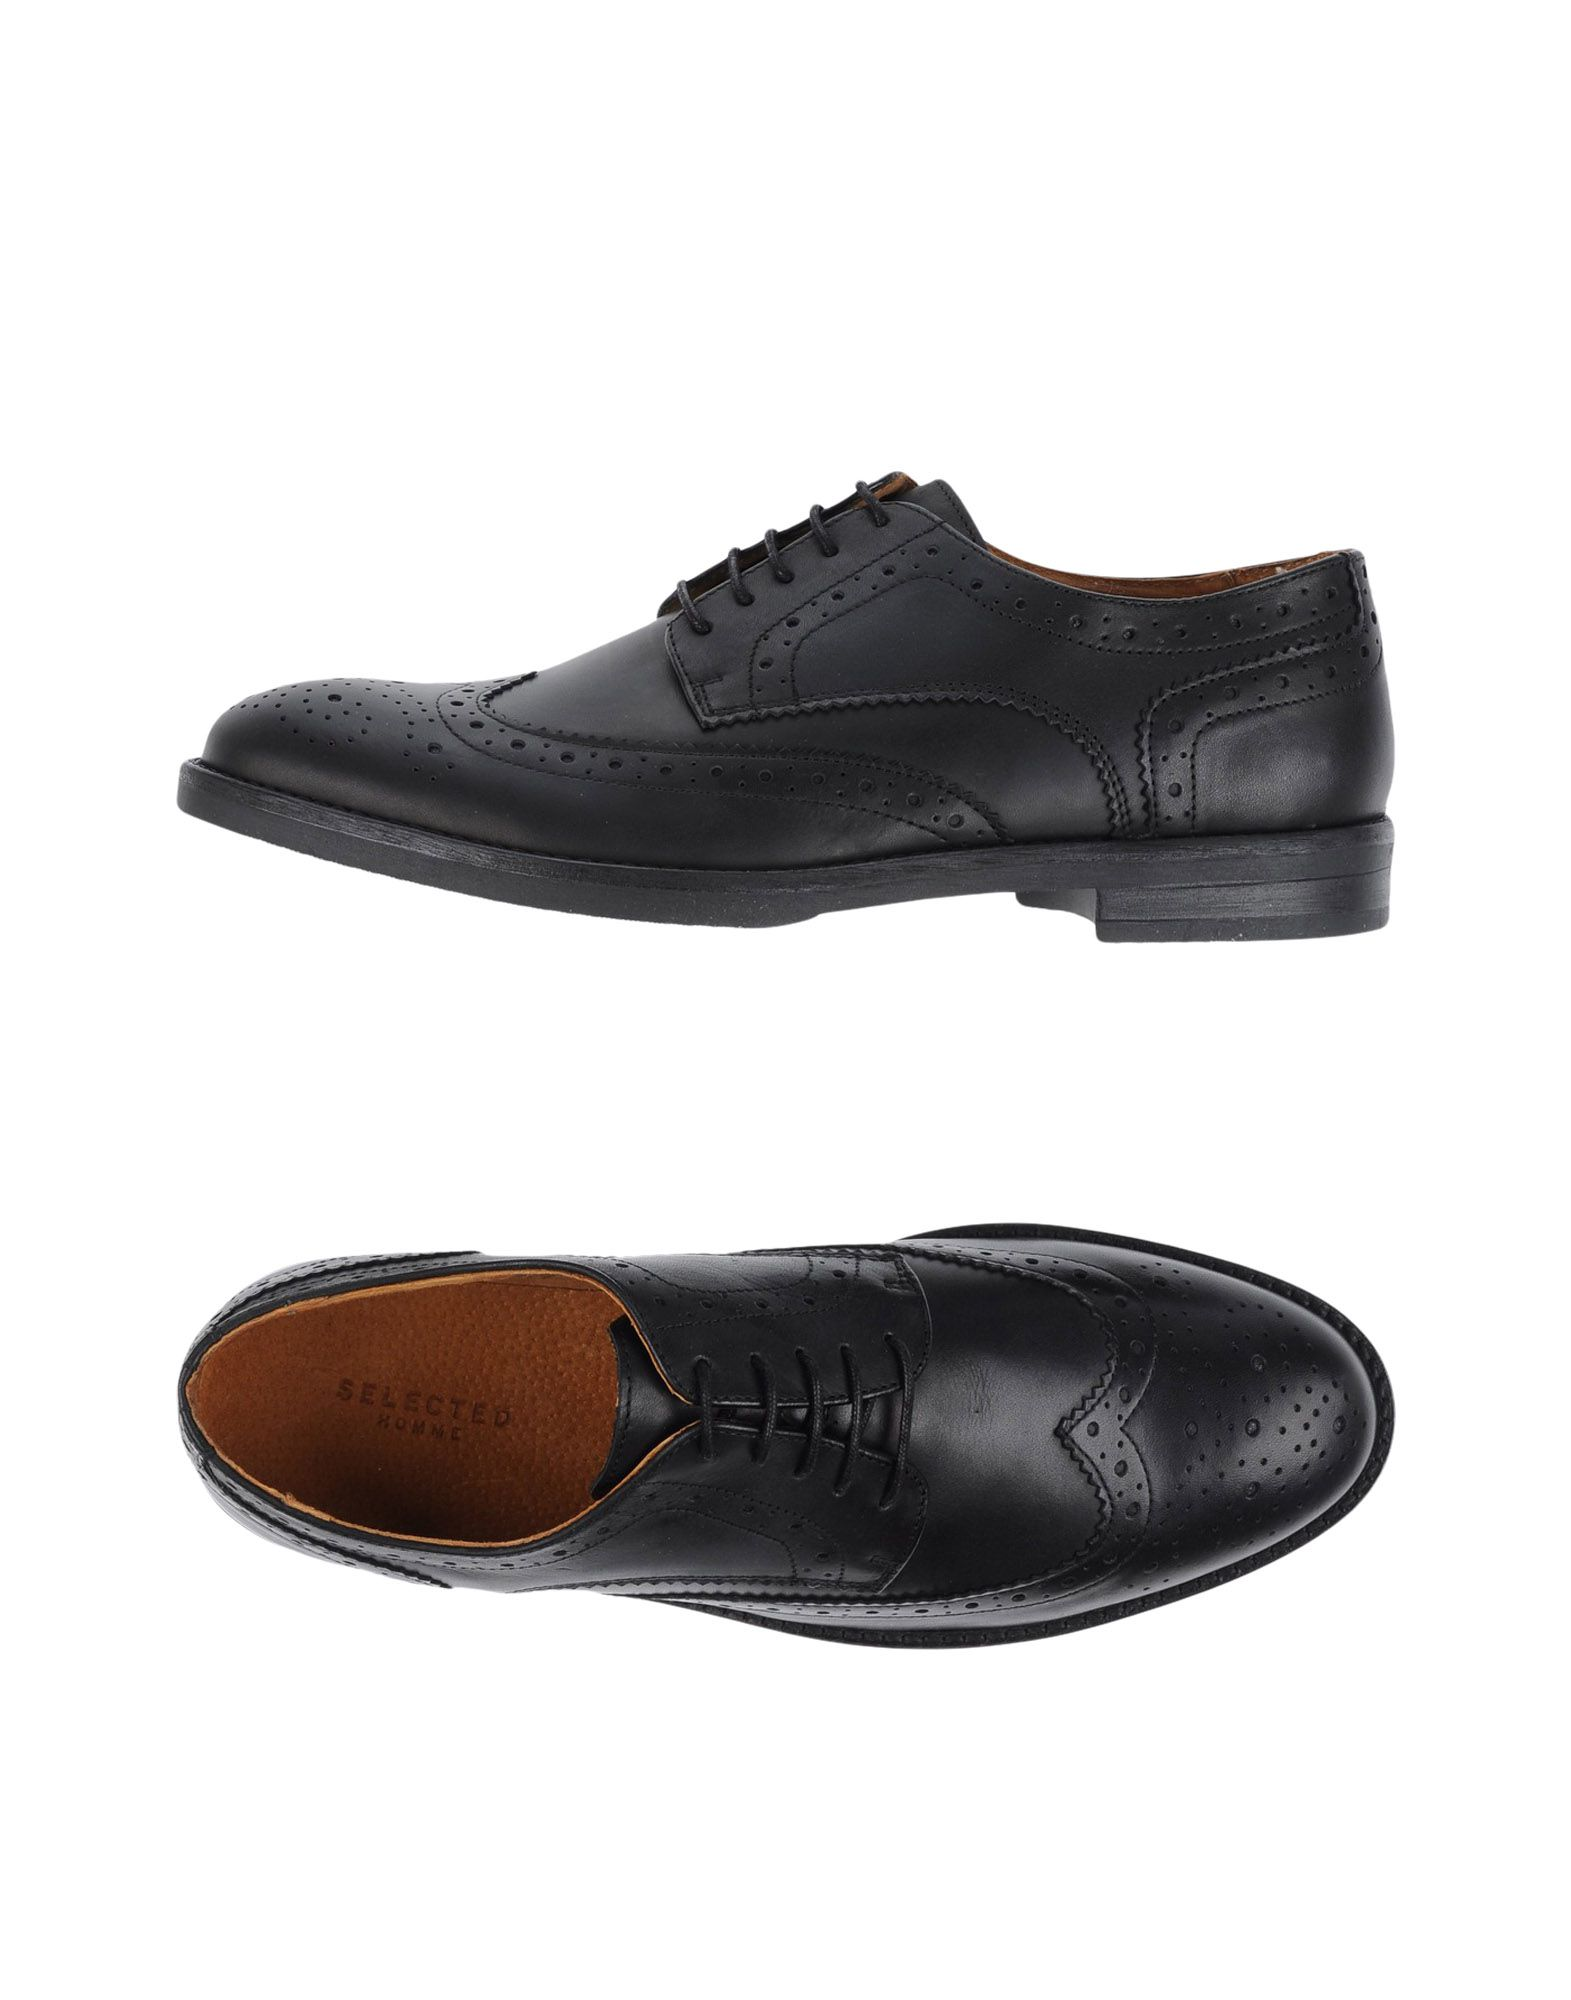 Stringate Selected Homme Uomo - 11260179WX